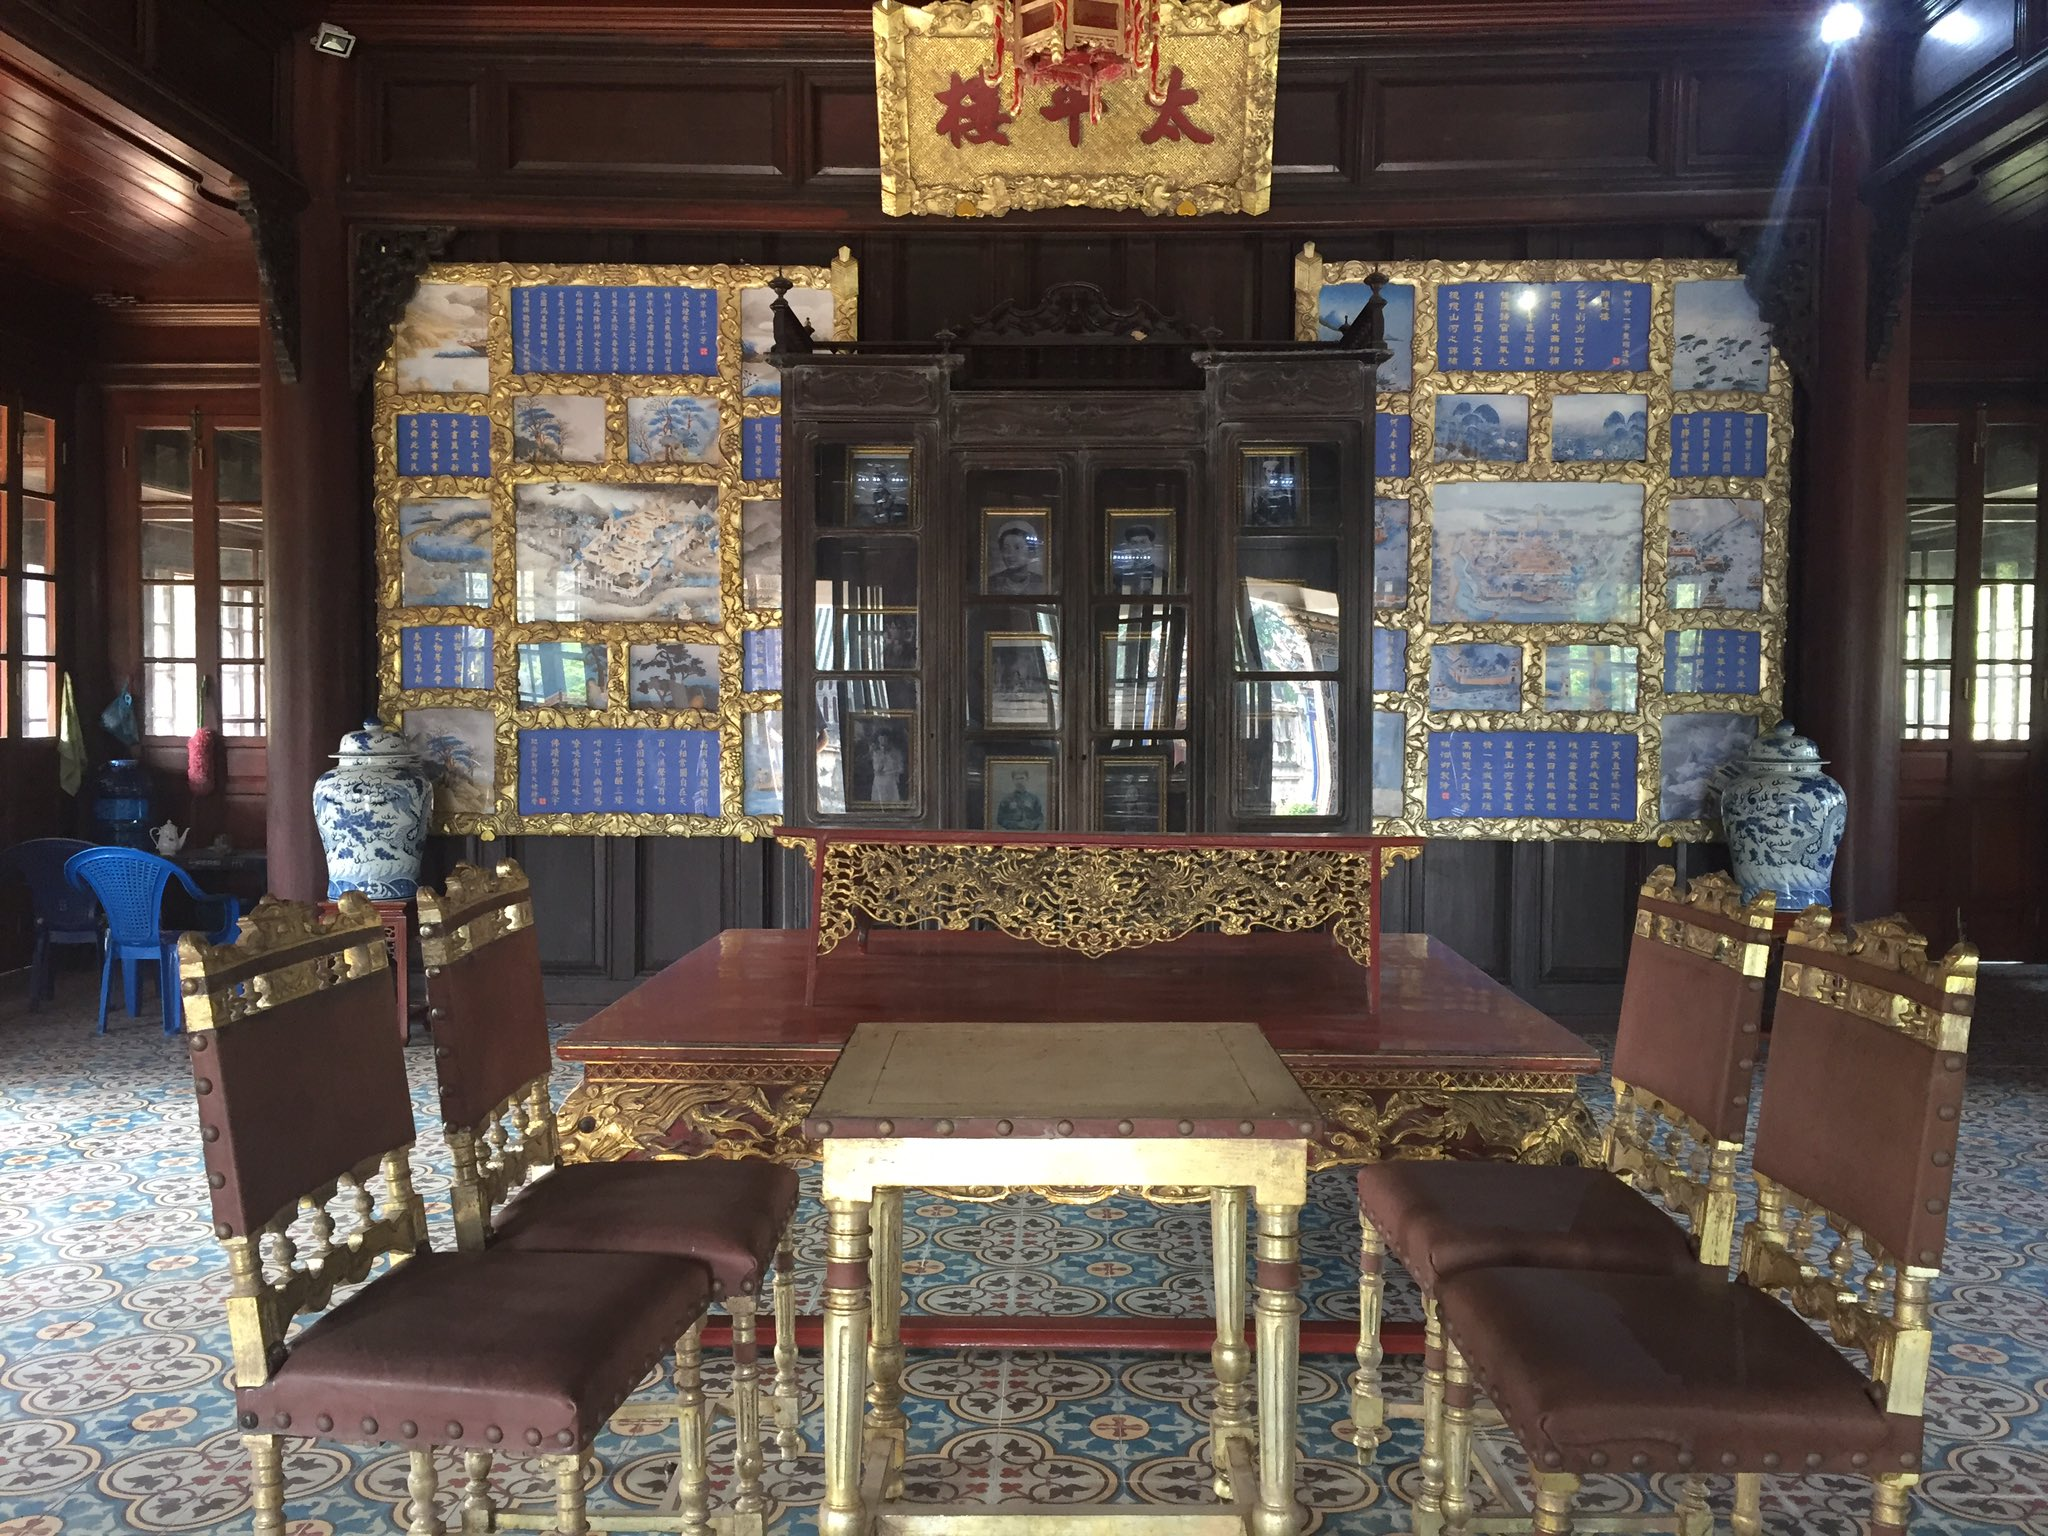 Thai Binh Ngu Lam Thu Lau = Royal Reading Pavilion of Extreme Peace #ReadingRooms #Libraries https://t.co/Hb3U9WNKPv